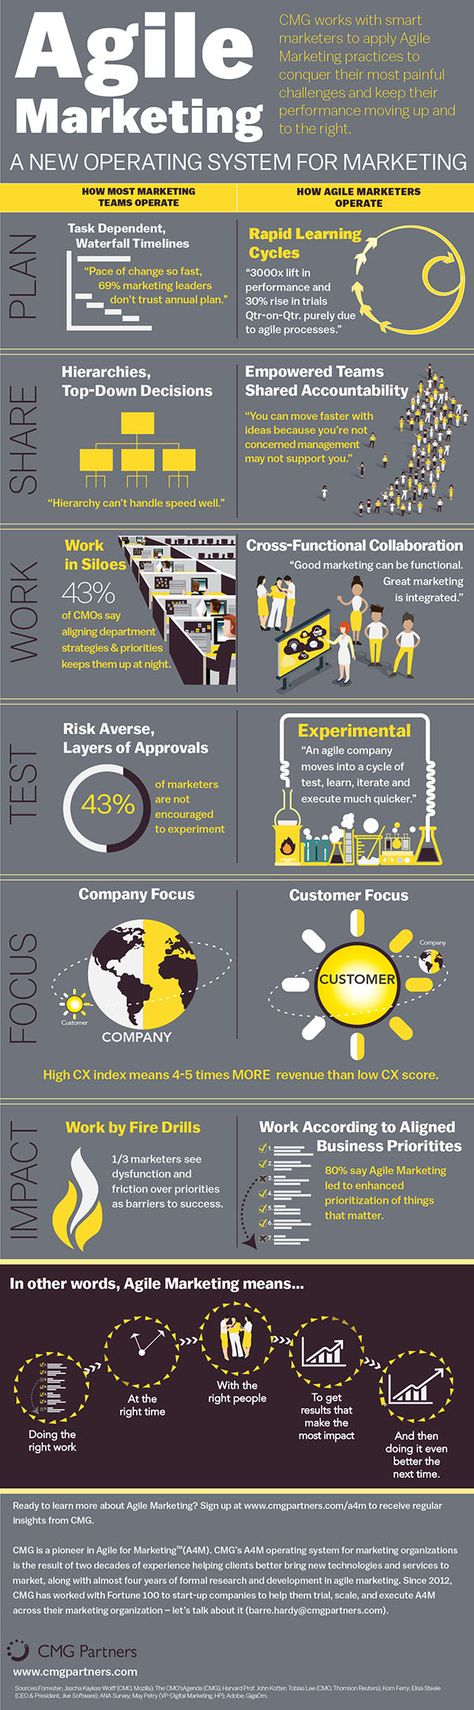 How Agile Marketers Operate [Infographic]